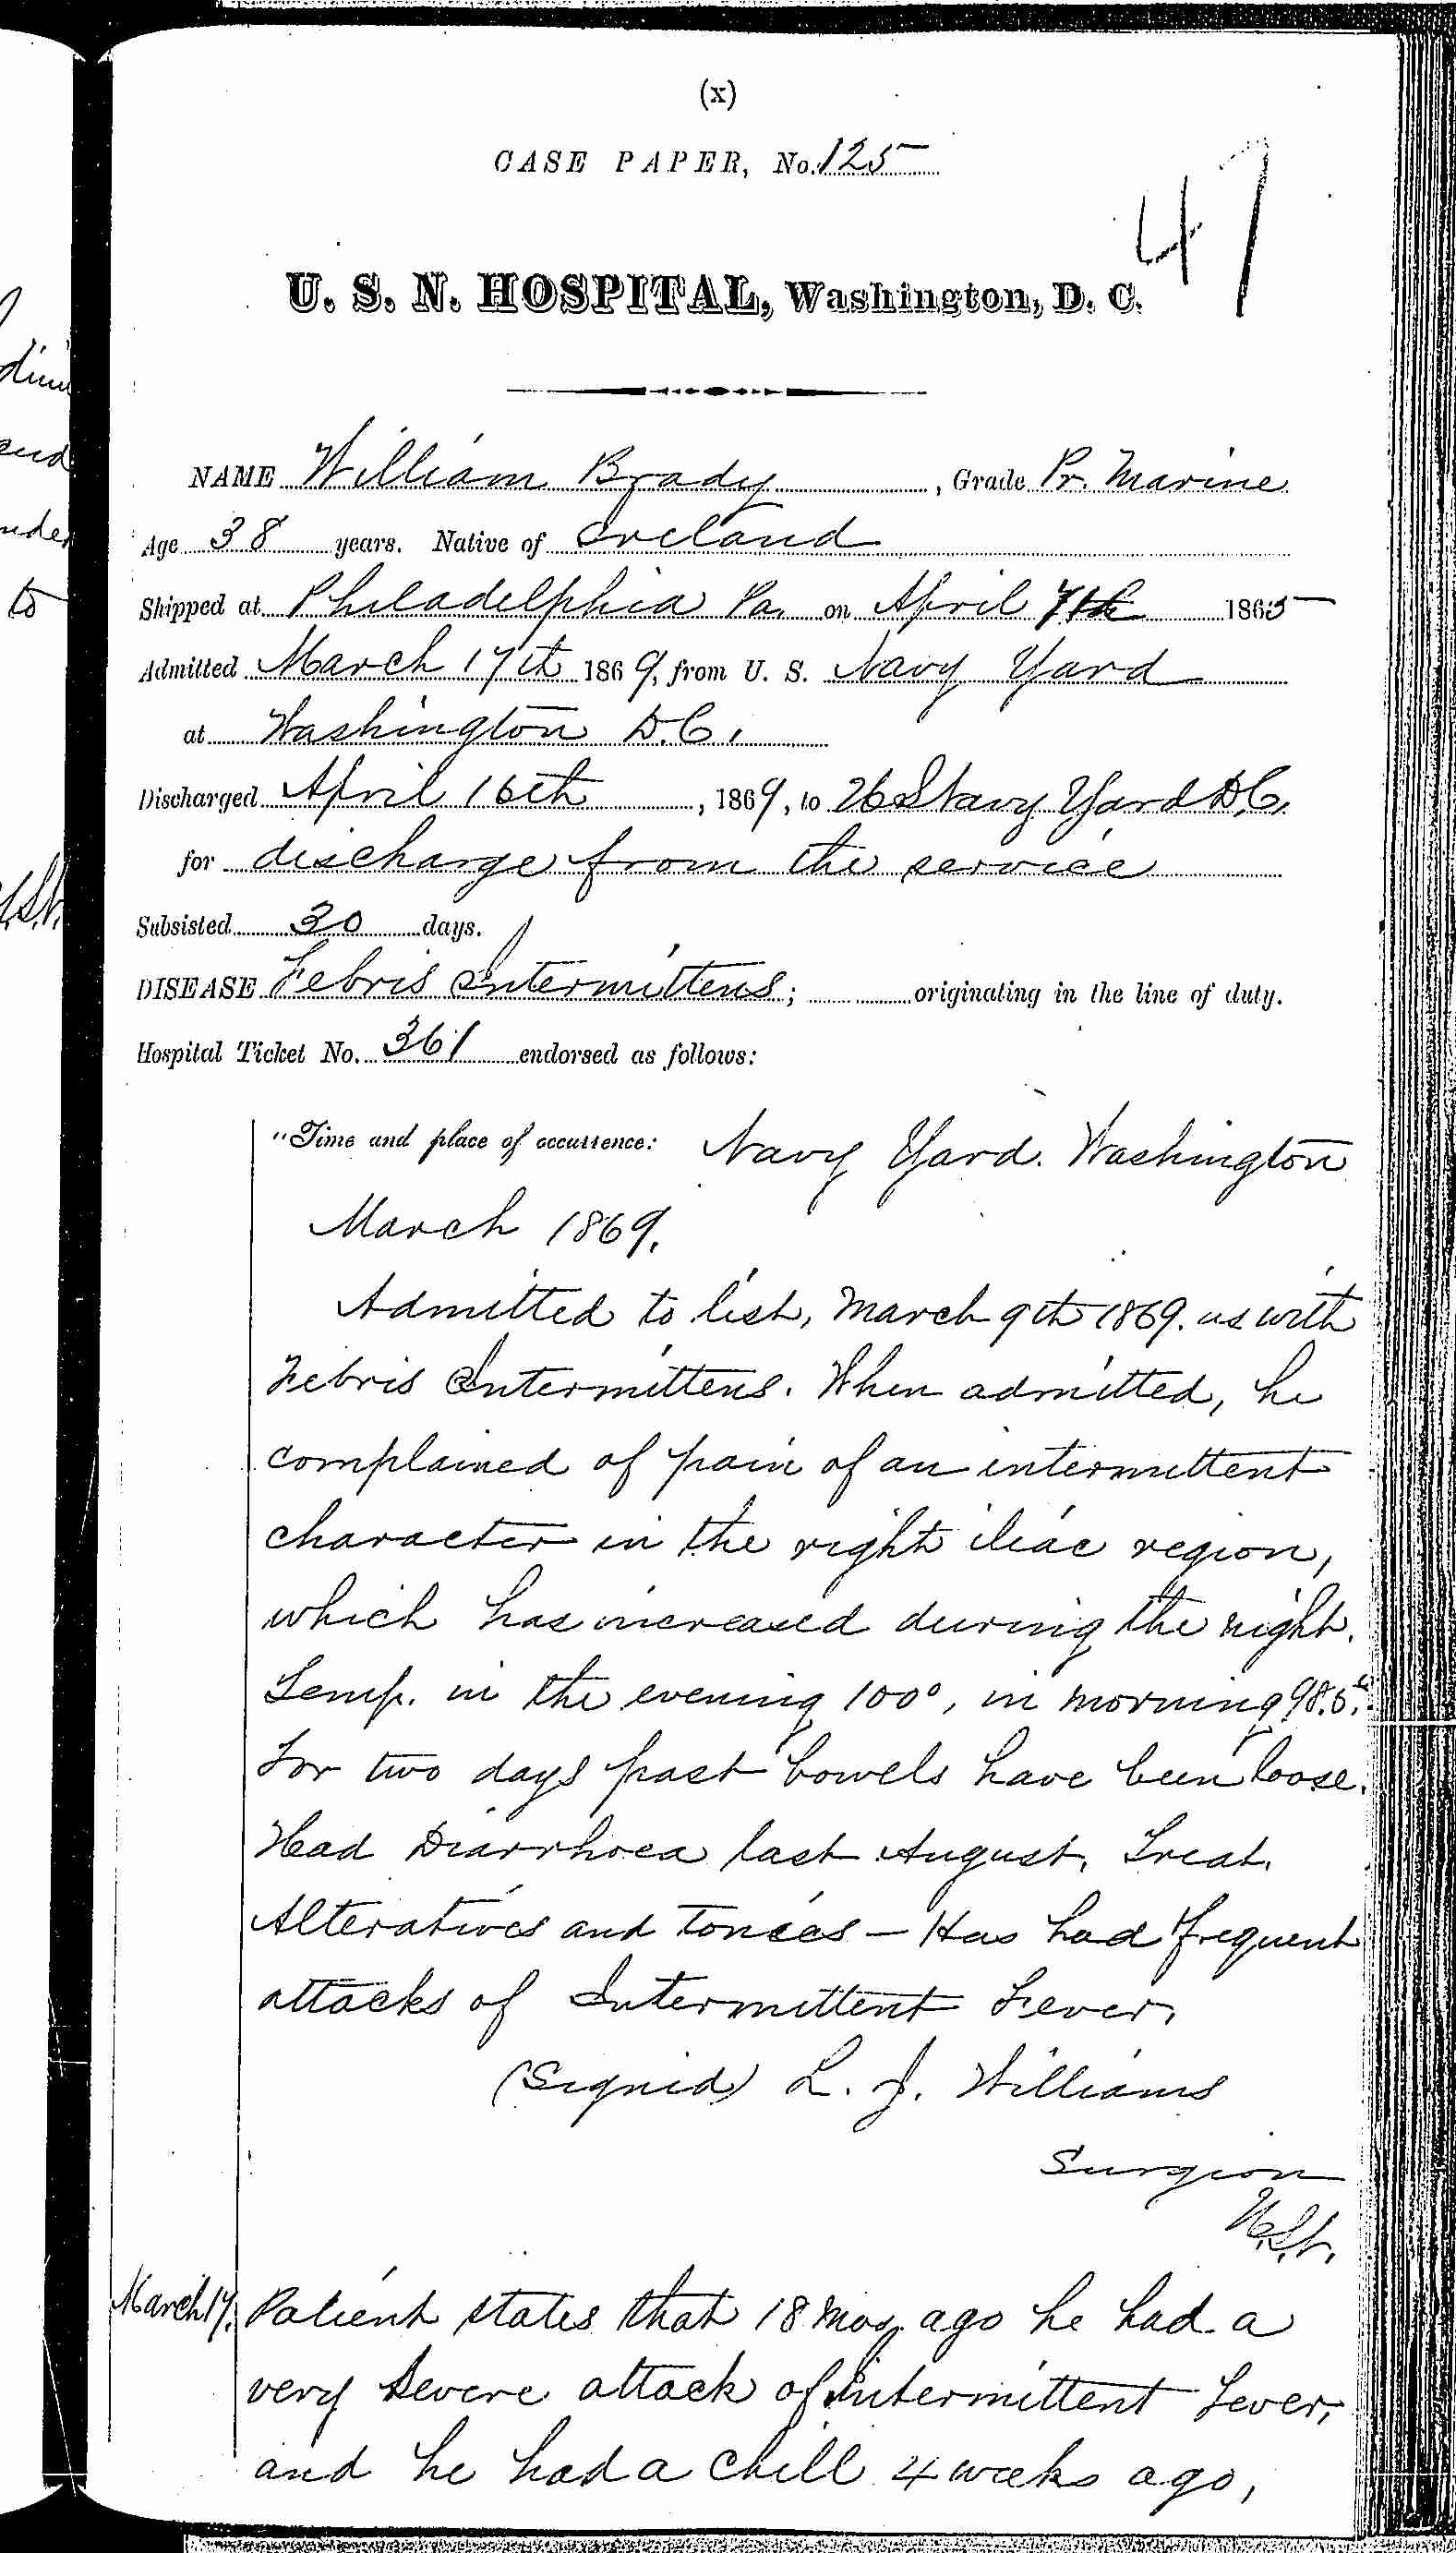 Entry for William Brady (page 1 of 5) in the log Hospital Tickets and Case Papers - Naval Hospital - Washington, D.C. - 1868-69